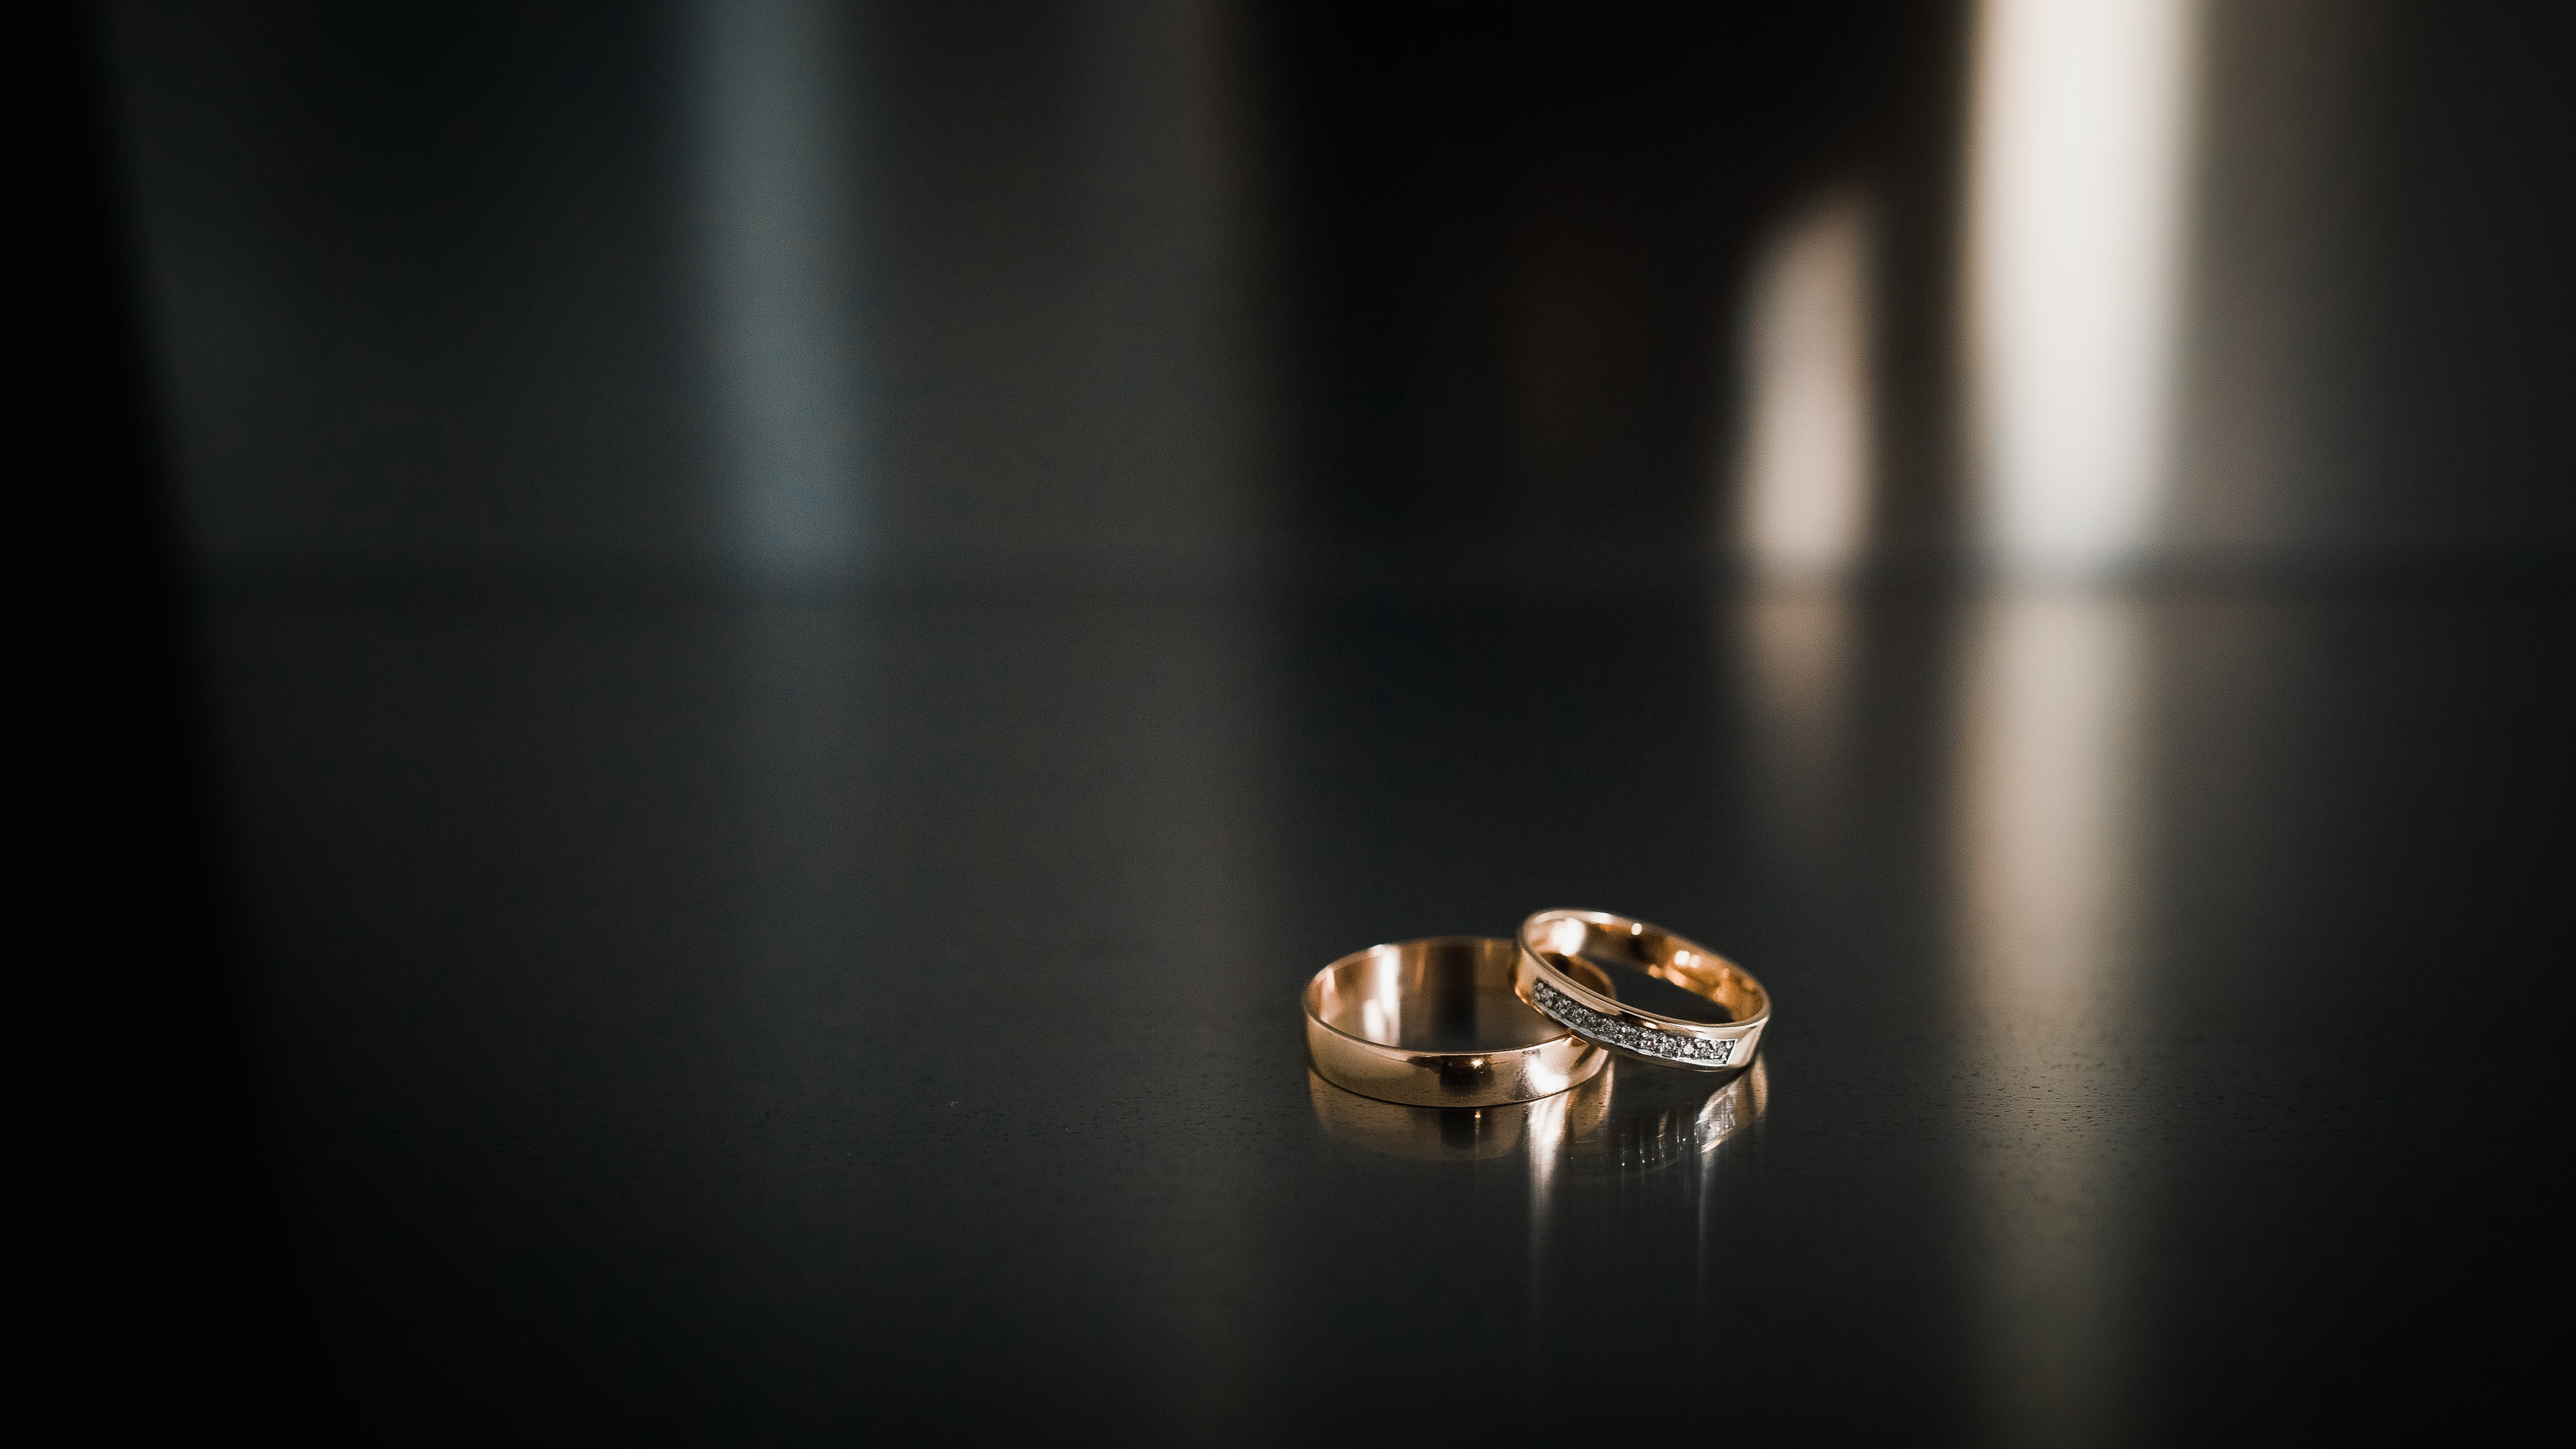 7 Things To Consider When Choosing A Wedding Ring